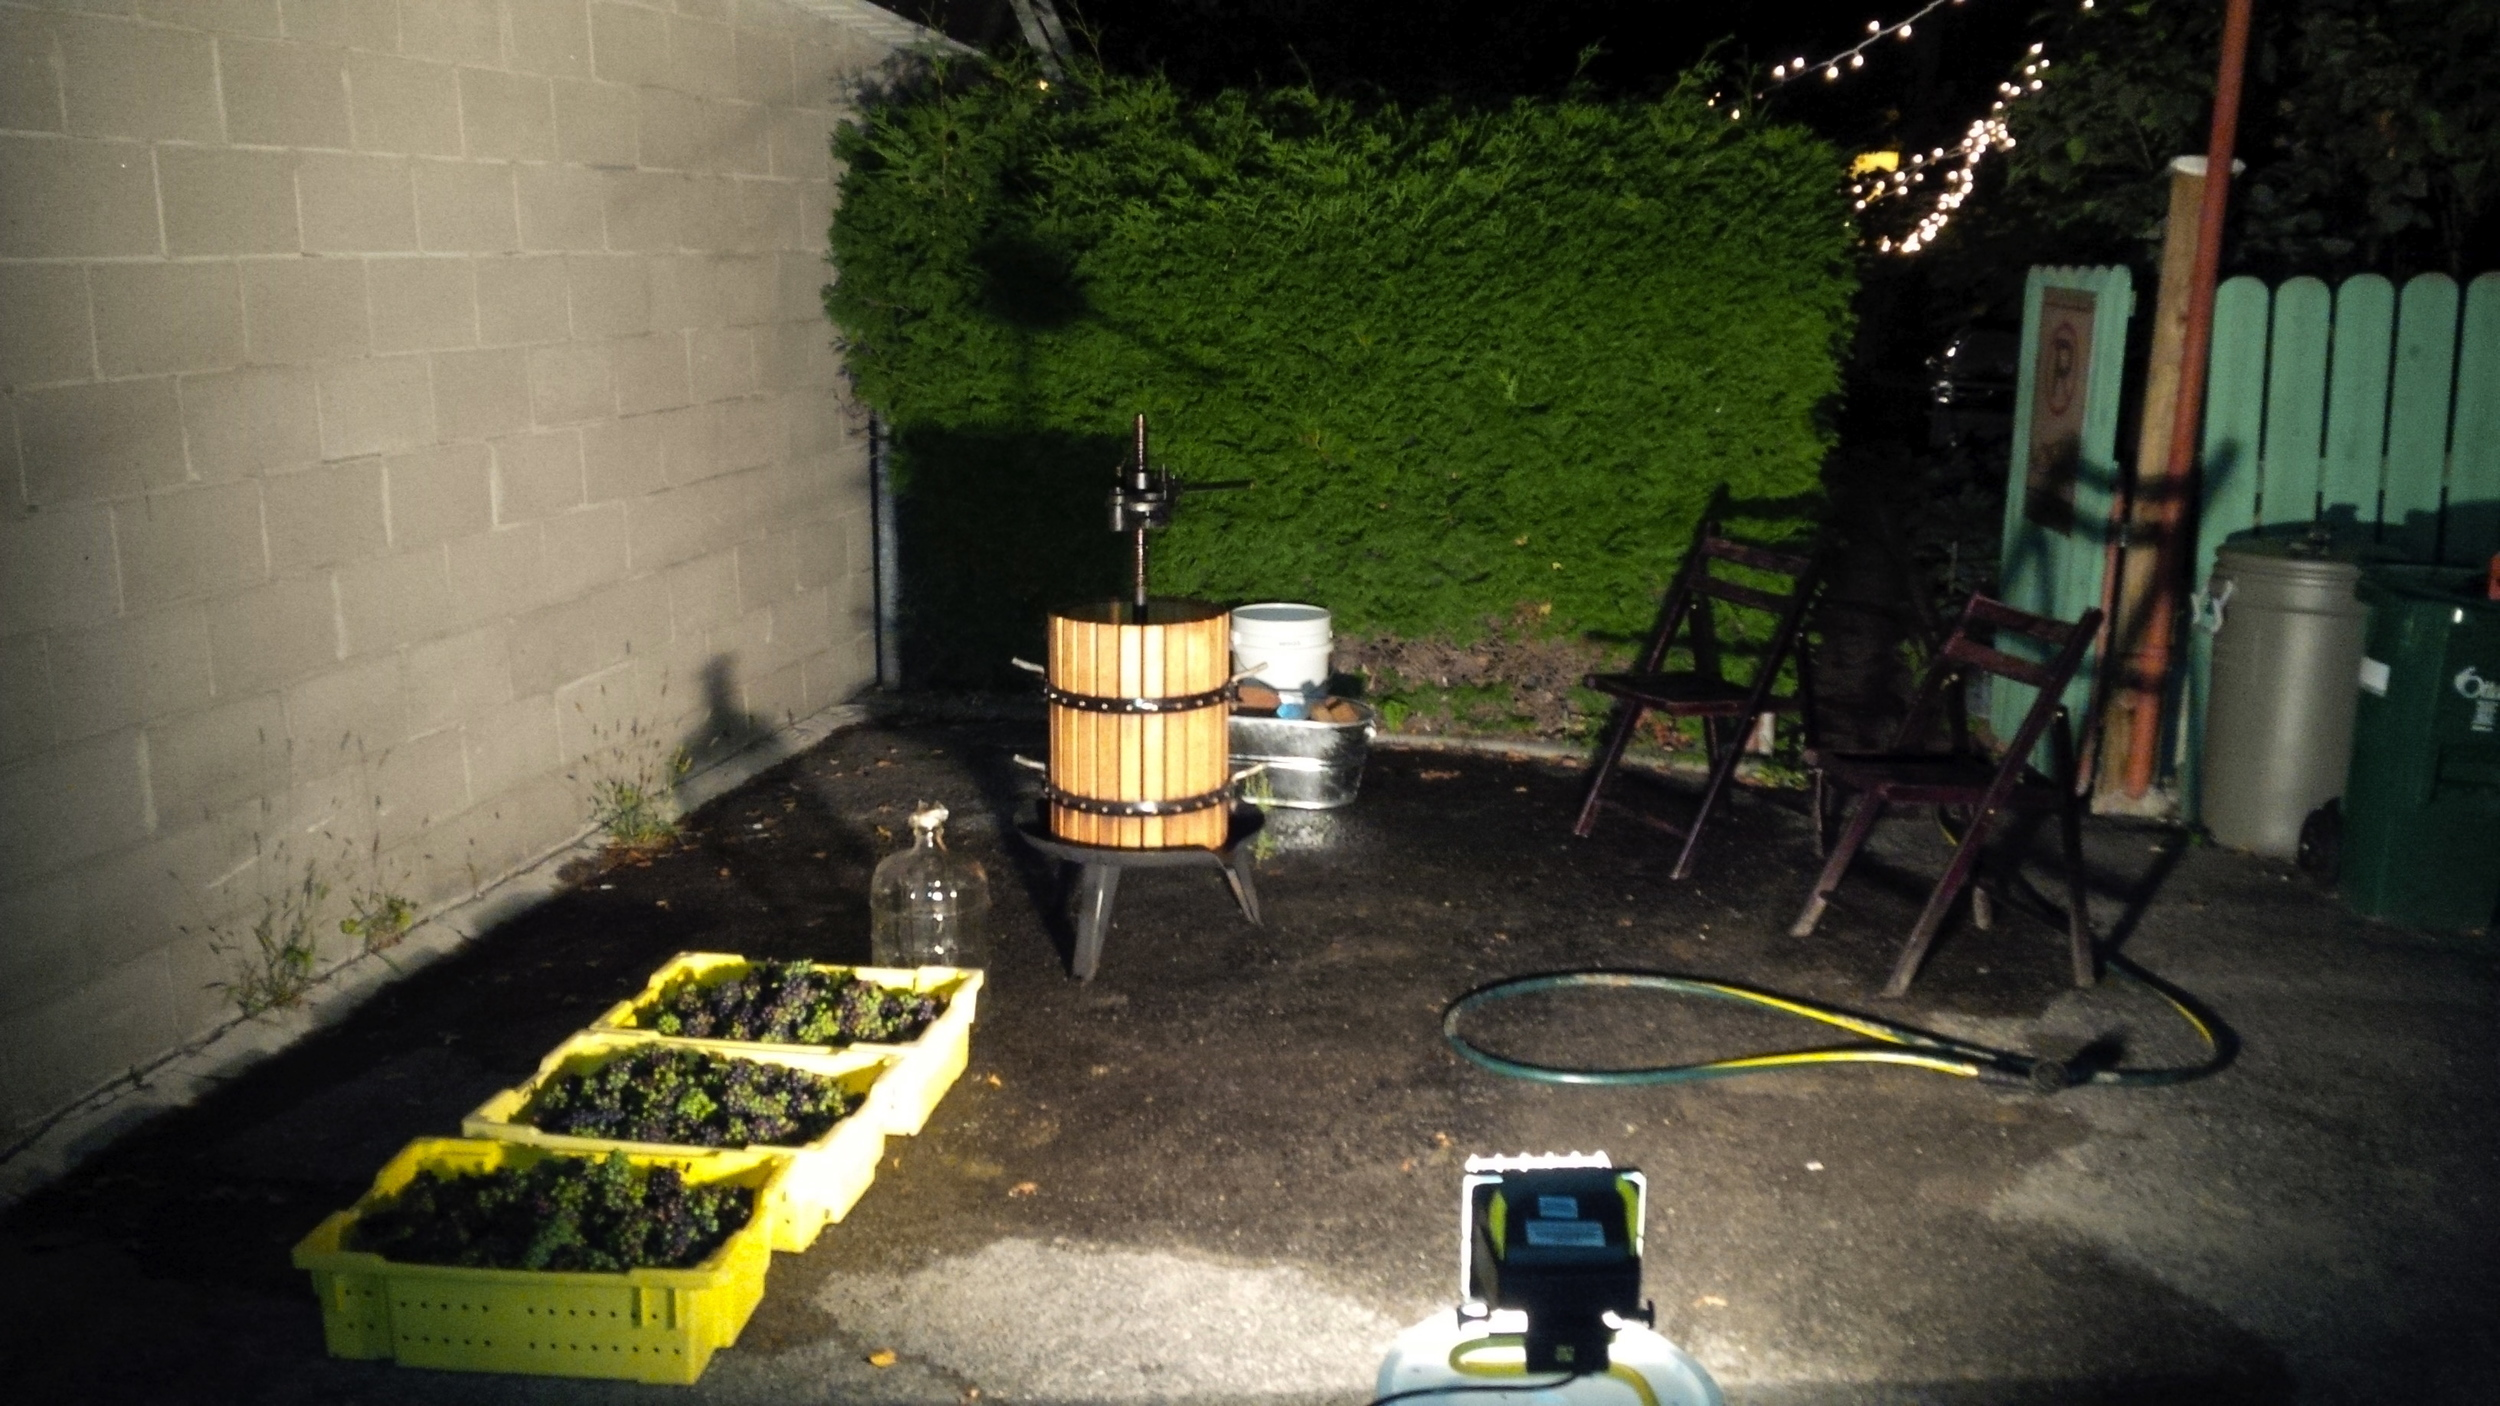 The Hintonburg Crush Pad (HPC) set up, ready to receive a load of grapes.